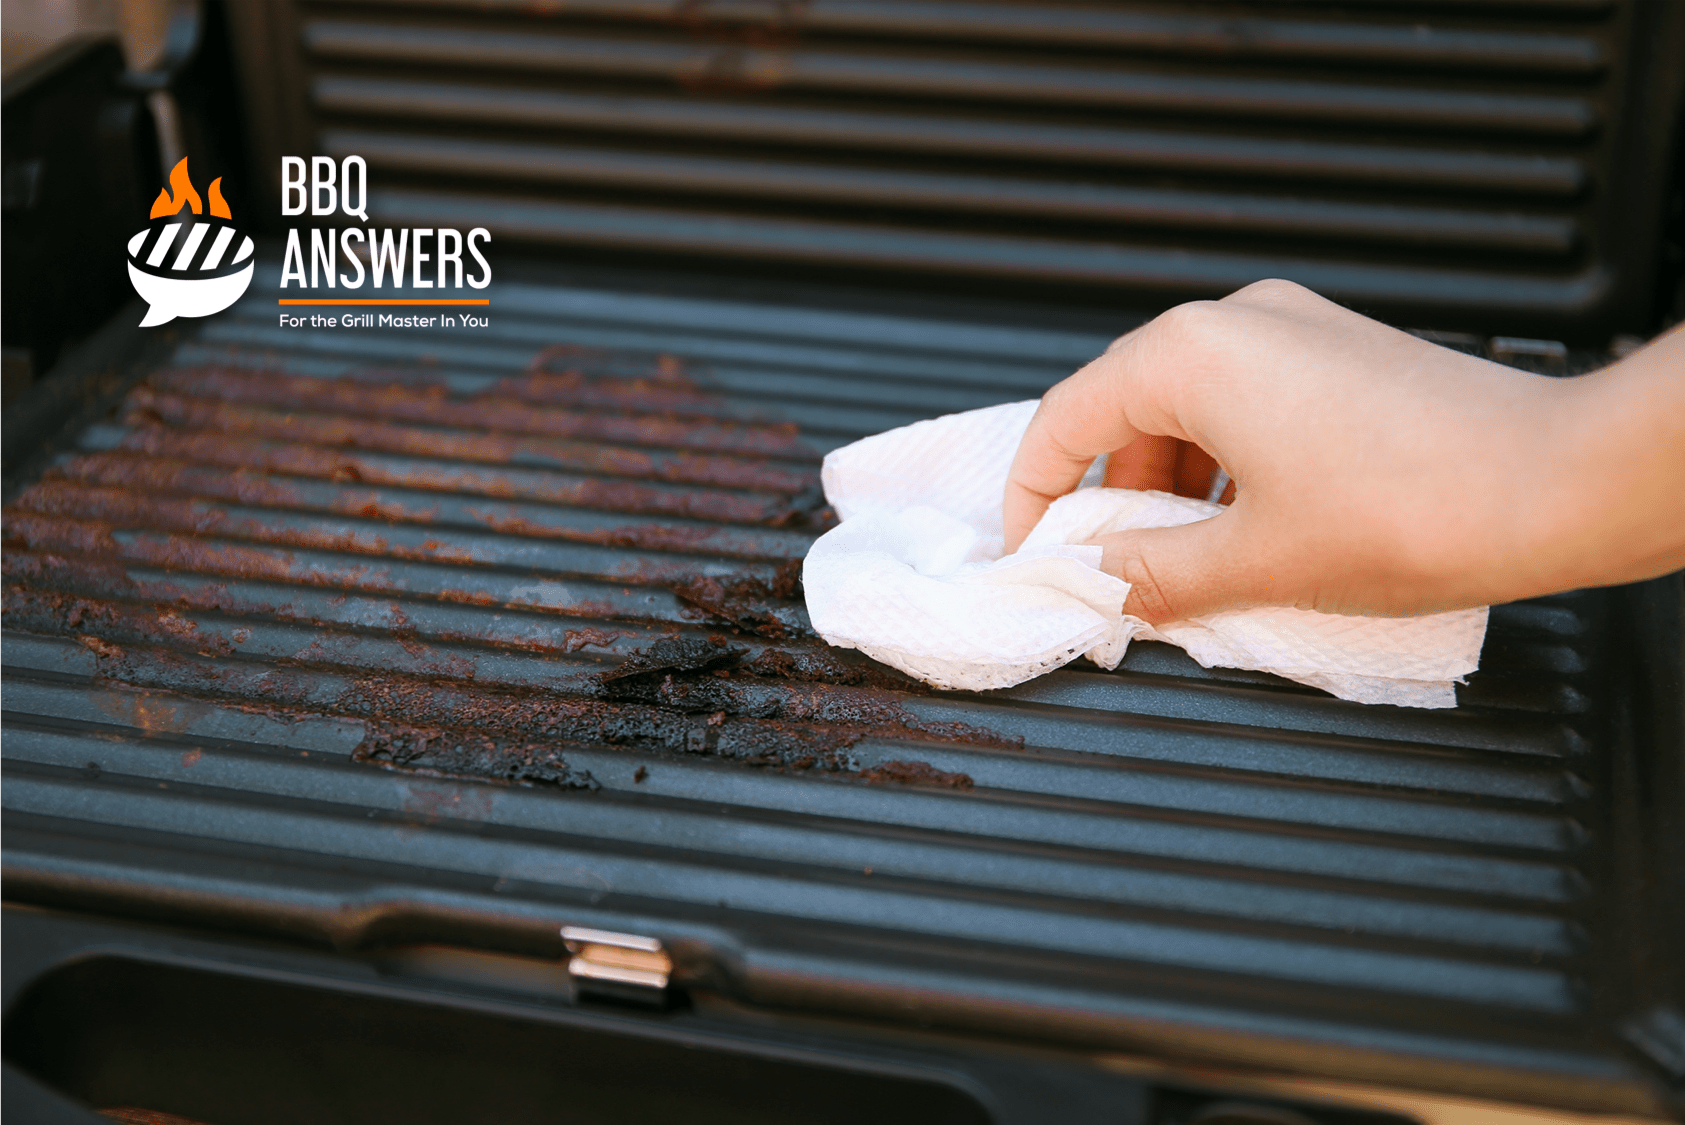 Cleaning Electric Grill | Electric Grill VS Charcoal Grill | BBQanswers